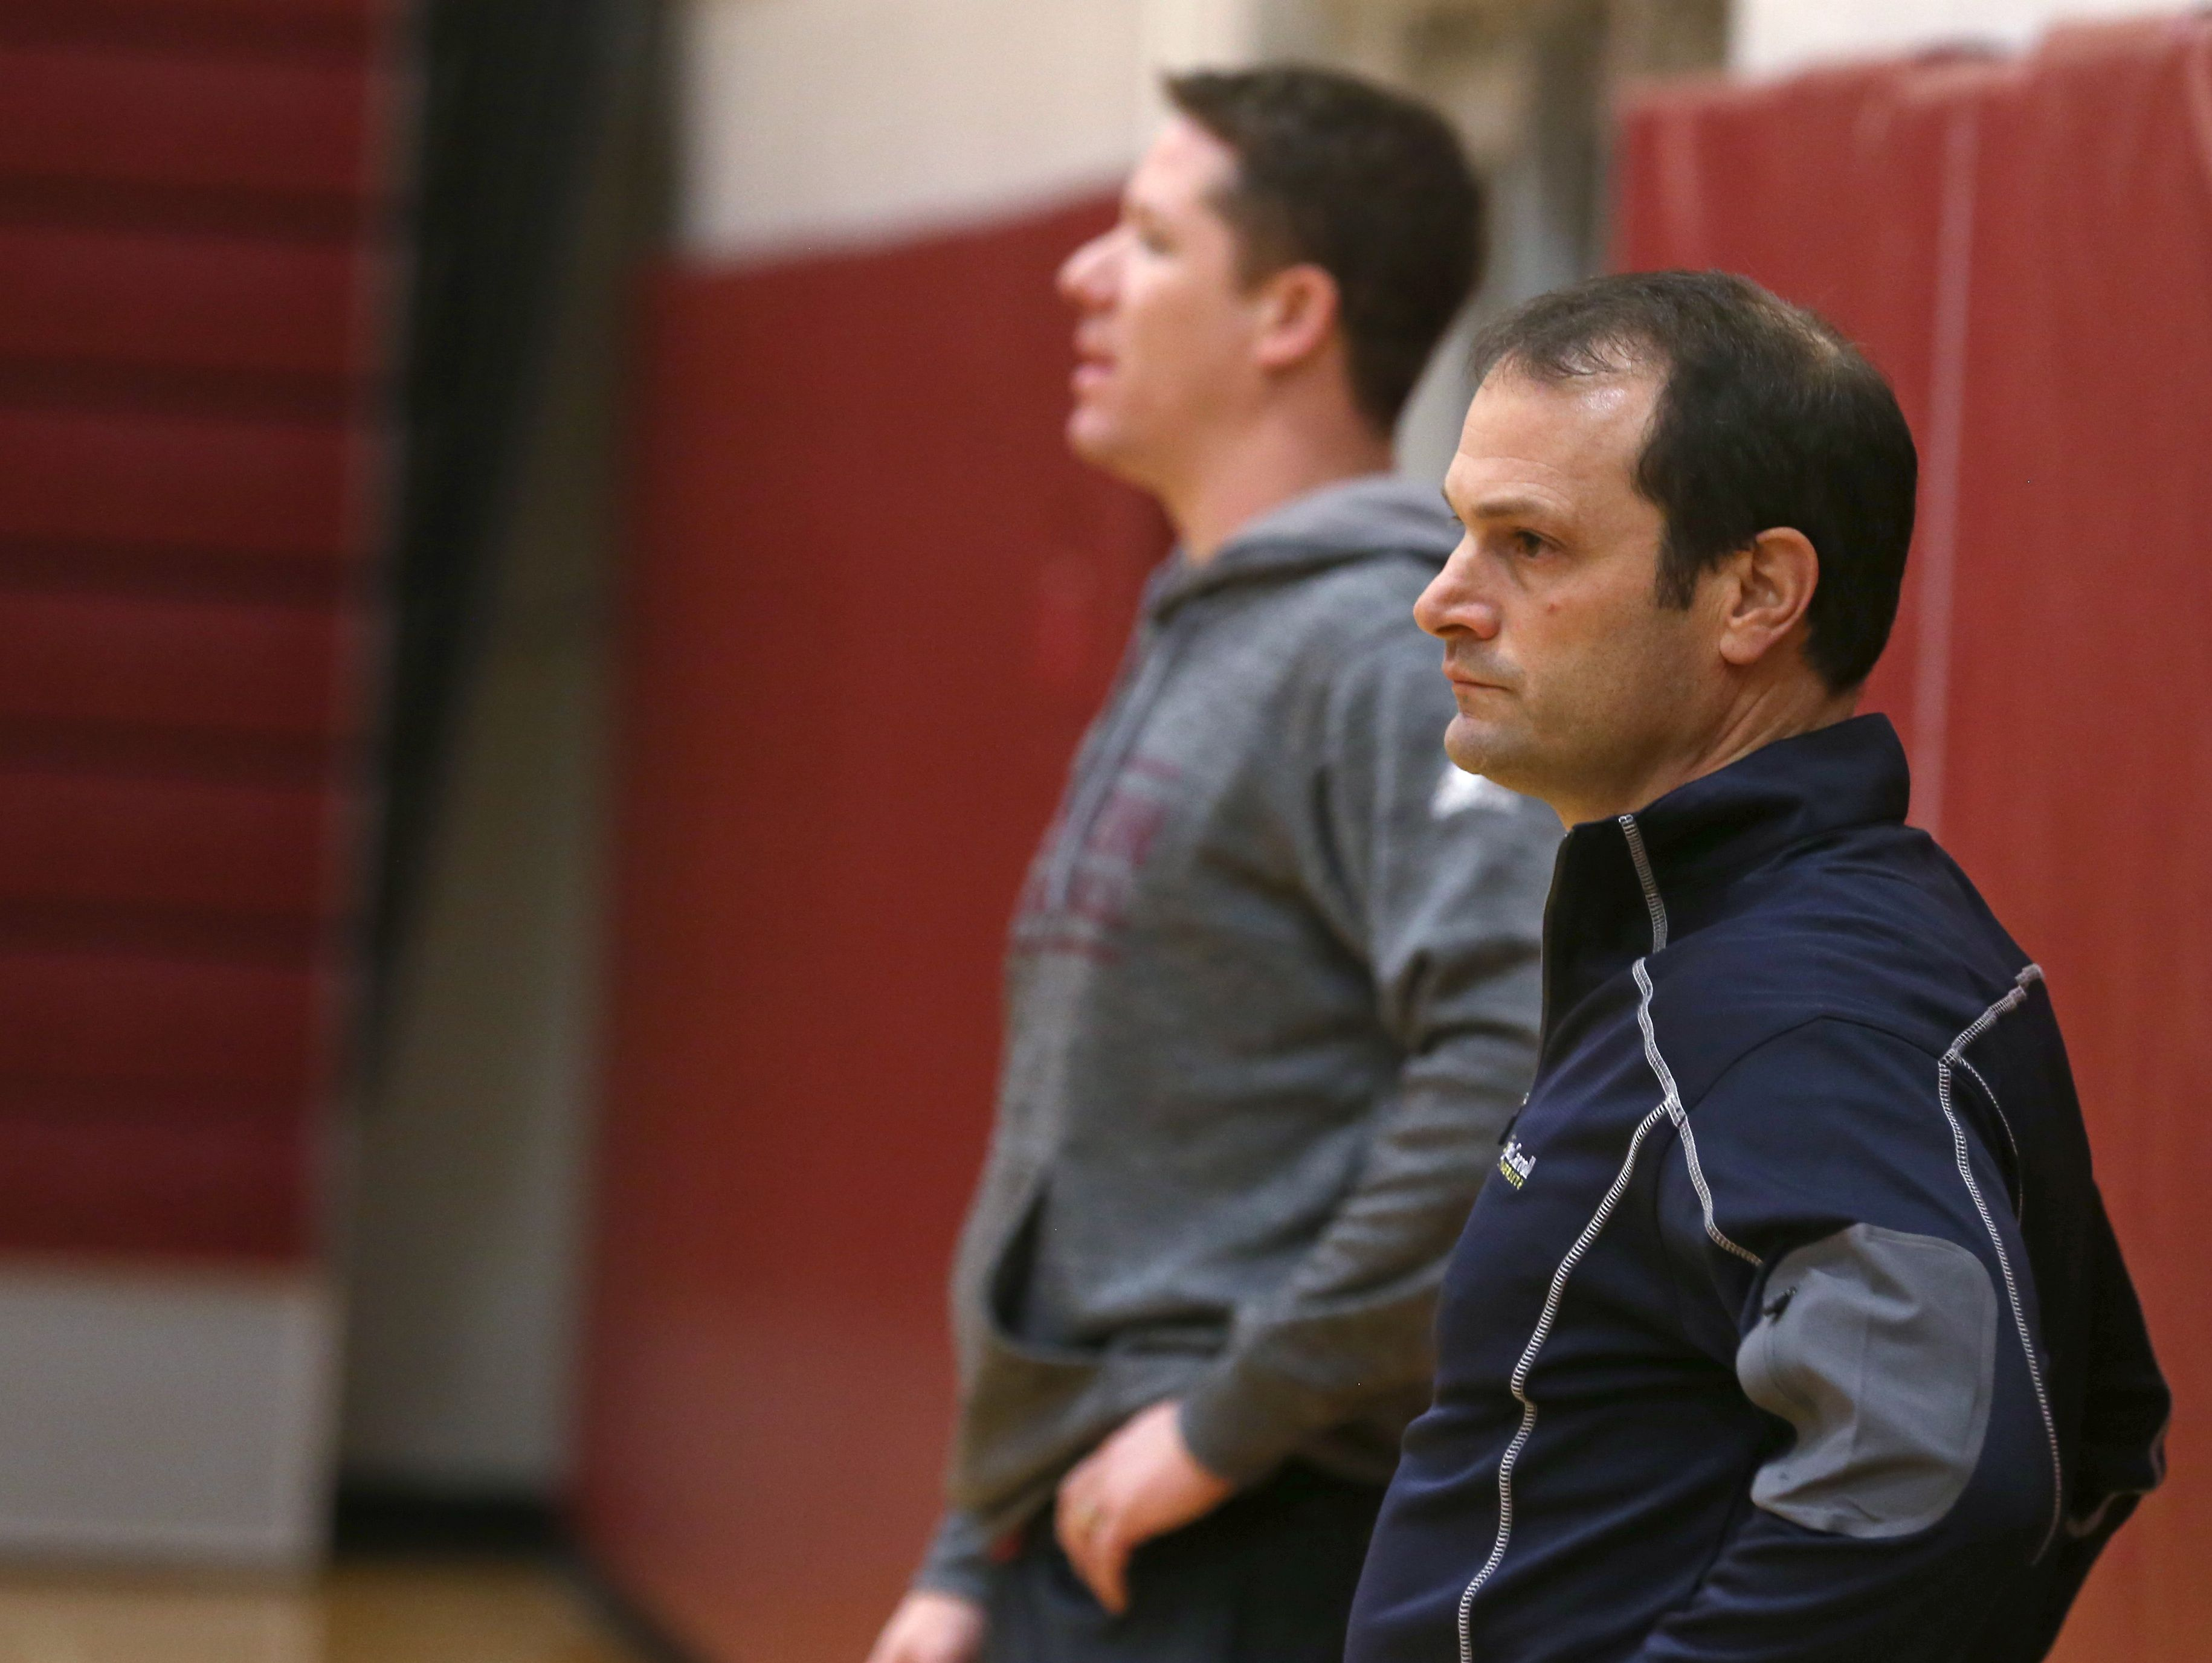 Jeff Amoroso, Pittsford Mendon boys varsity basketball assistant coach, right, works side-by-side with head coach Bob Nally during practice Tuesday.